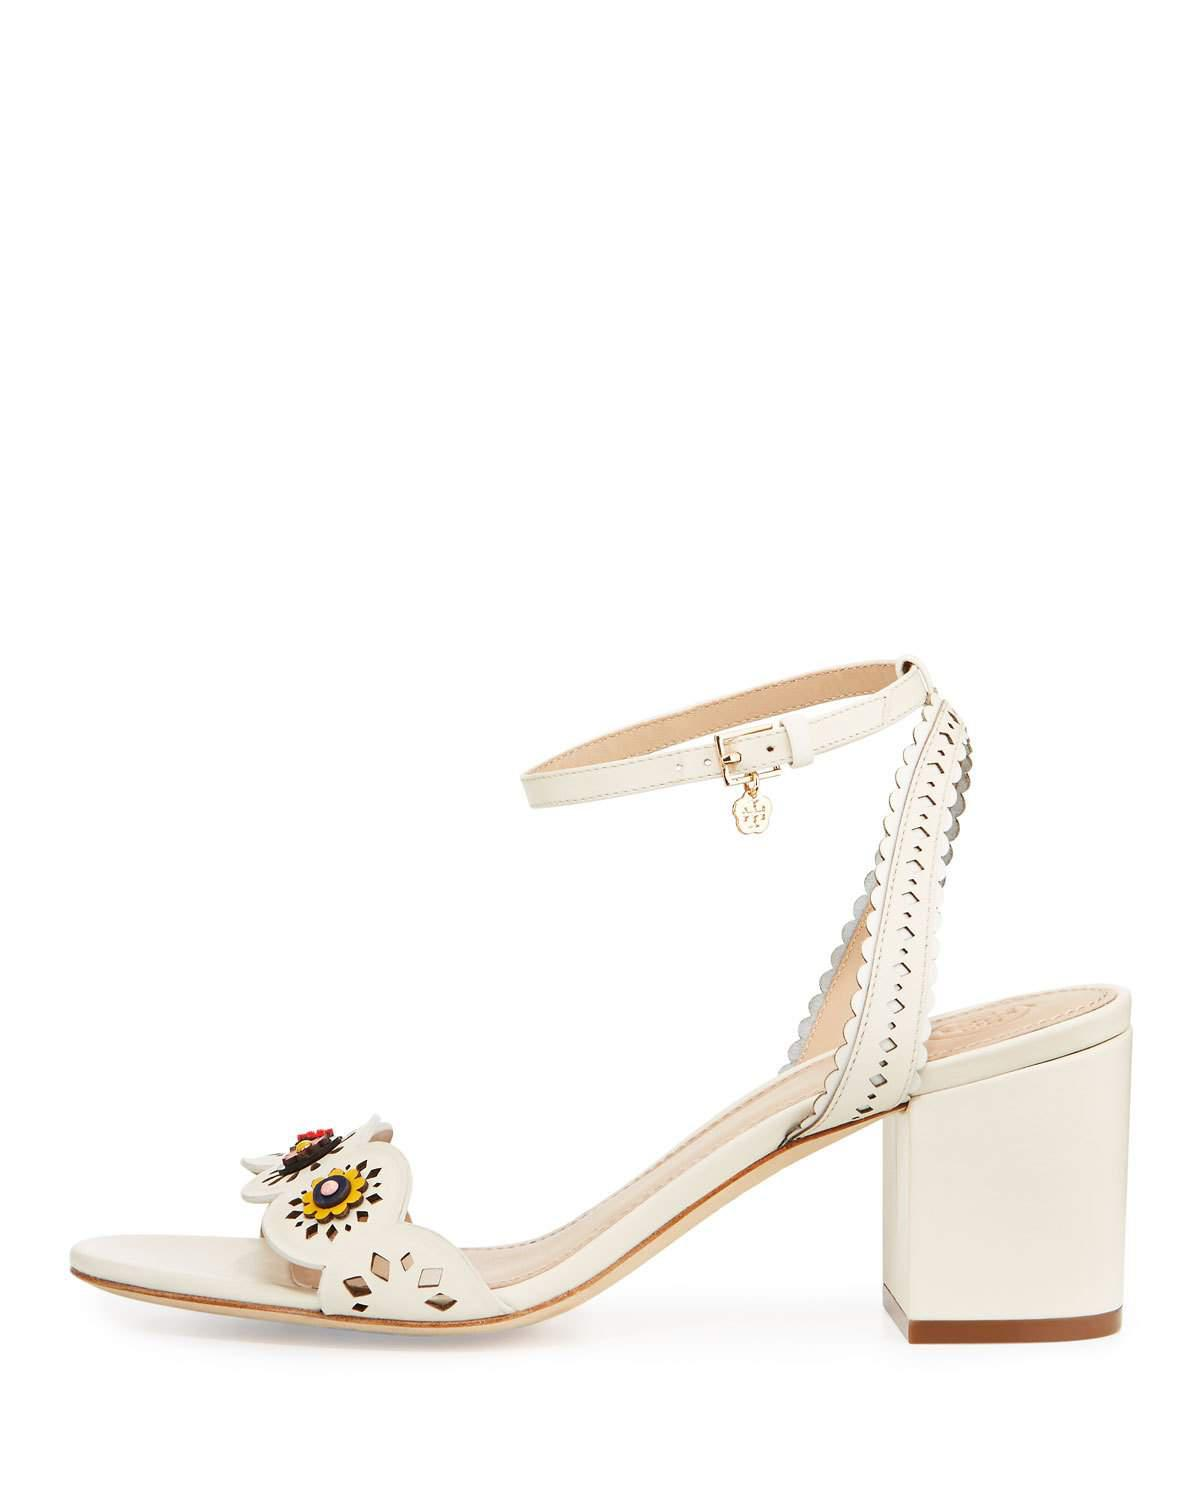 f601b7cc25a Lyst - Tory Burch Marguerite Perforated Sandal in White